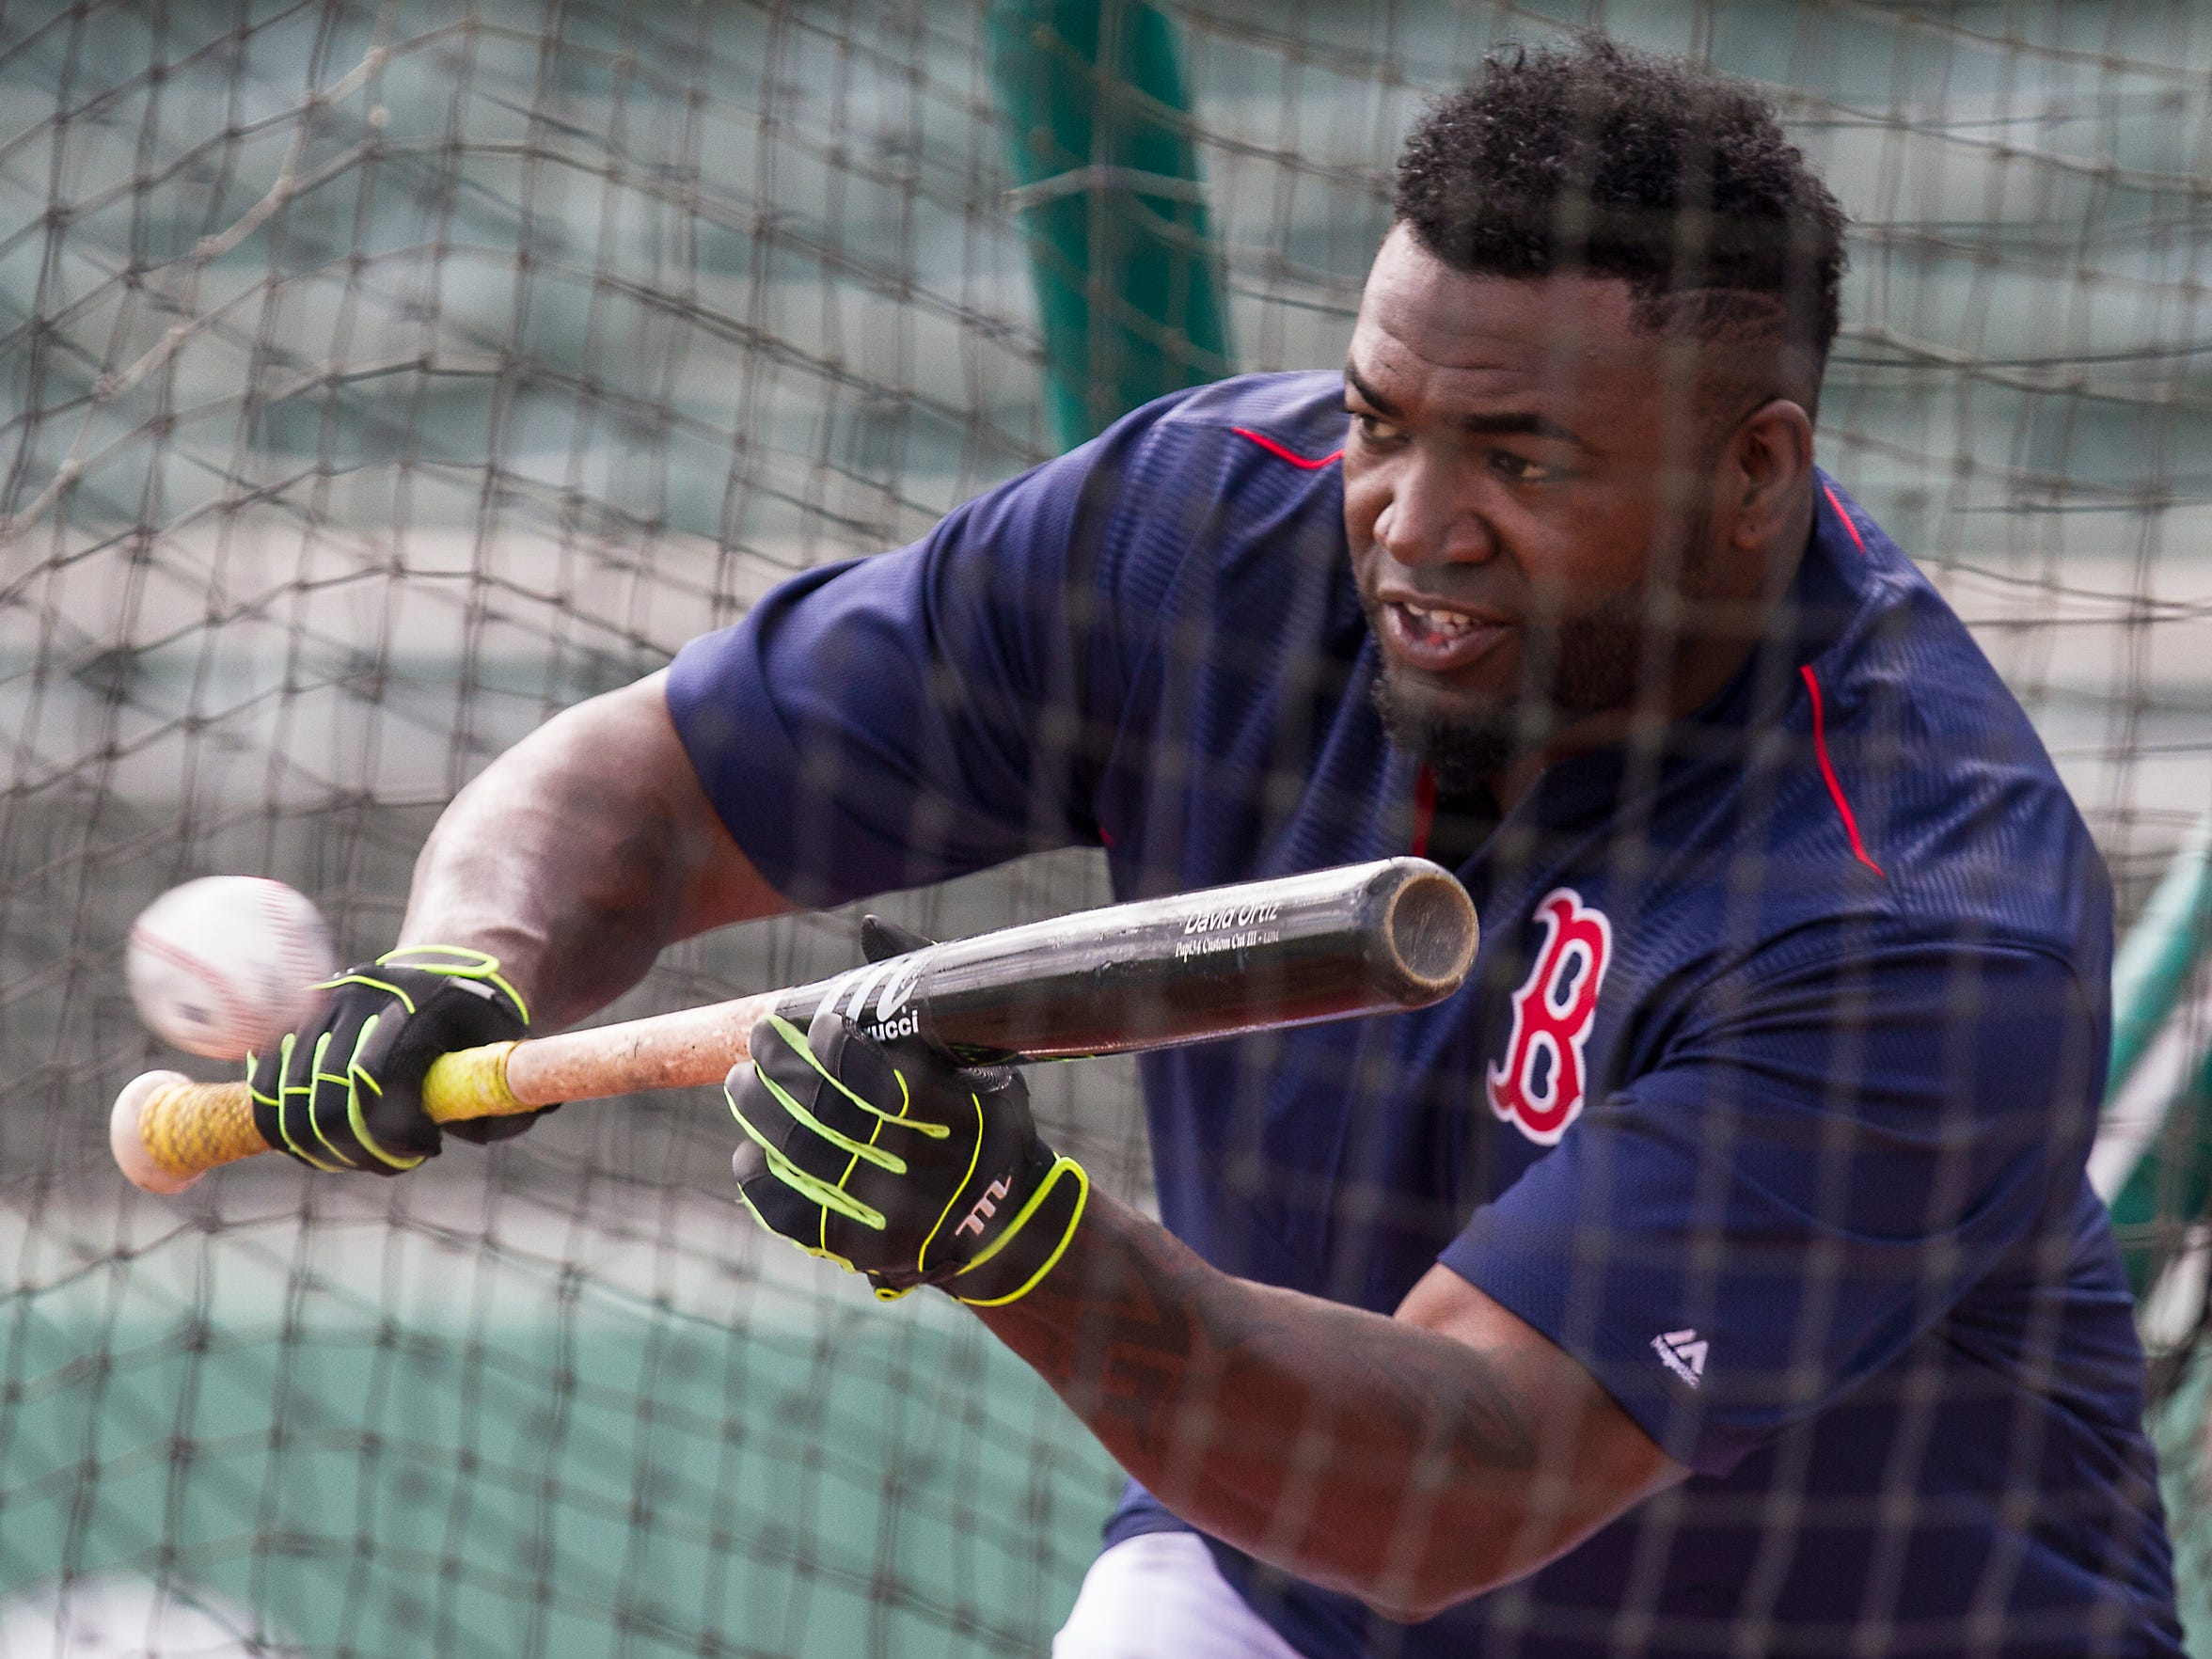 Boston Red Sox designated hitter David Ortiz bunts during batting practice Thursday morning (3/10/16)  prior to their game against the Minnesota Twins at jetBlue Park.